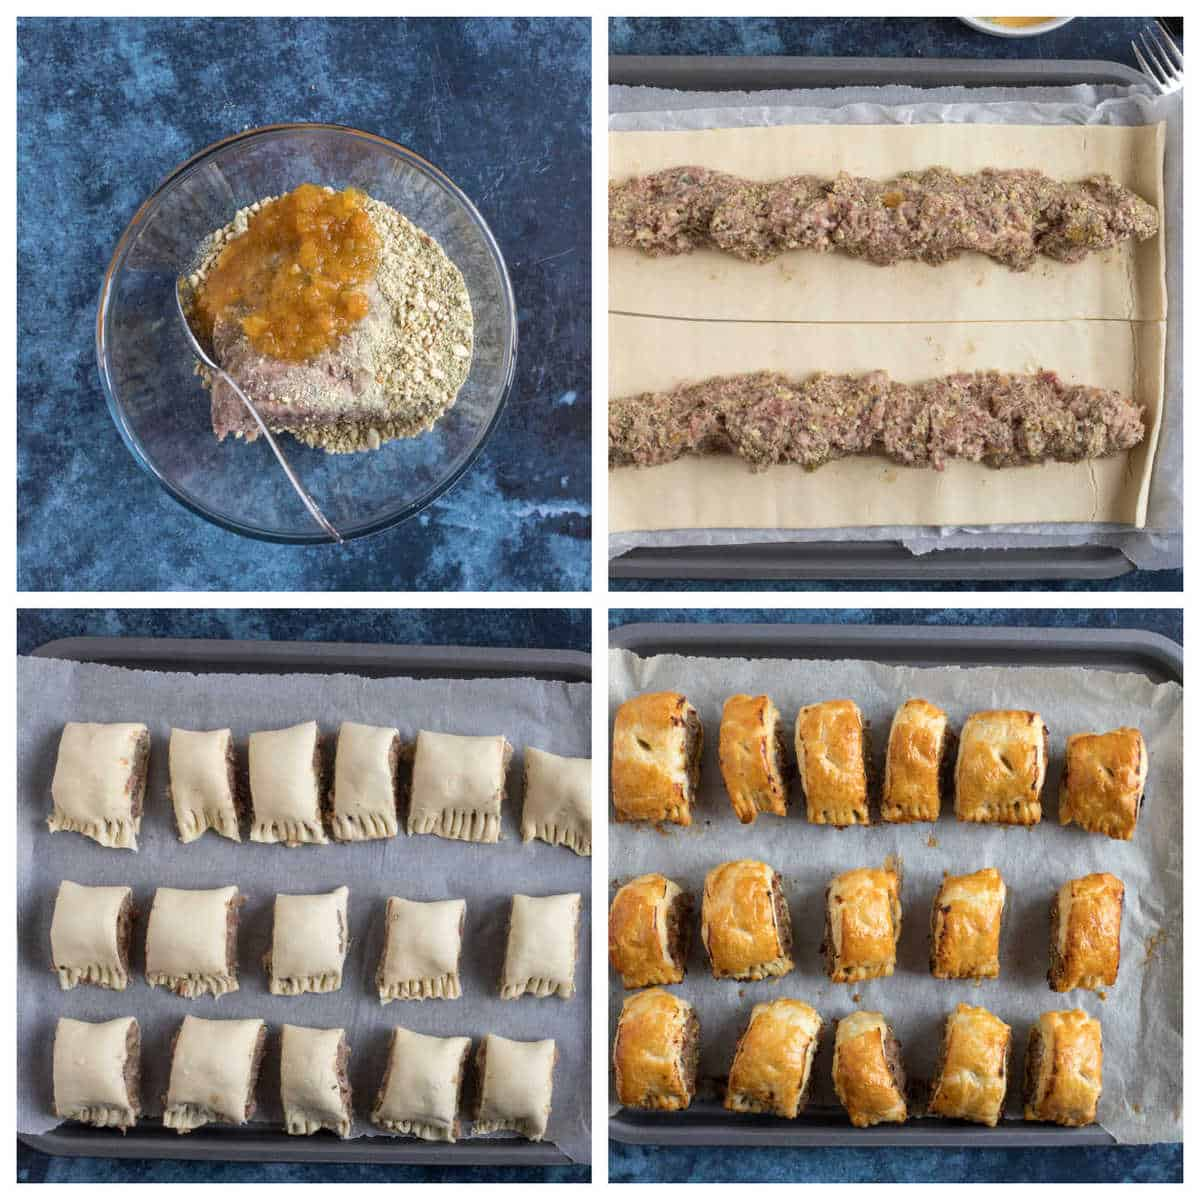 Step by step photo instructions for making puff pastry sausage rolls.